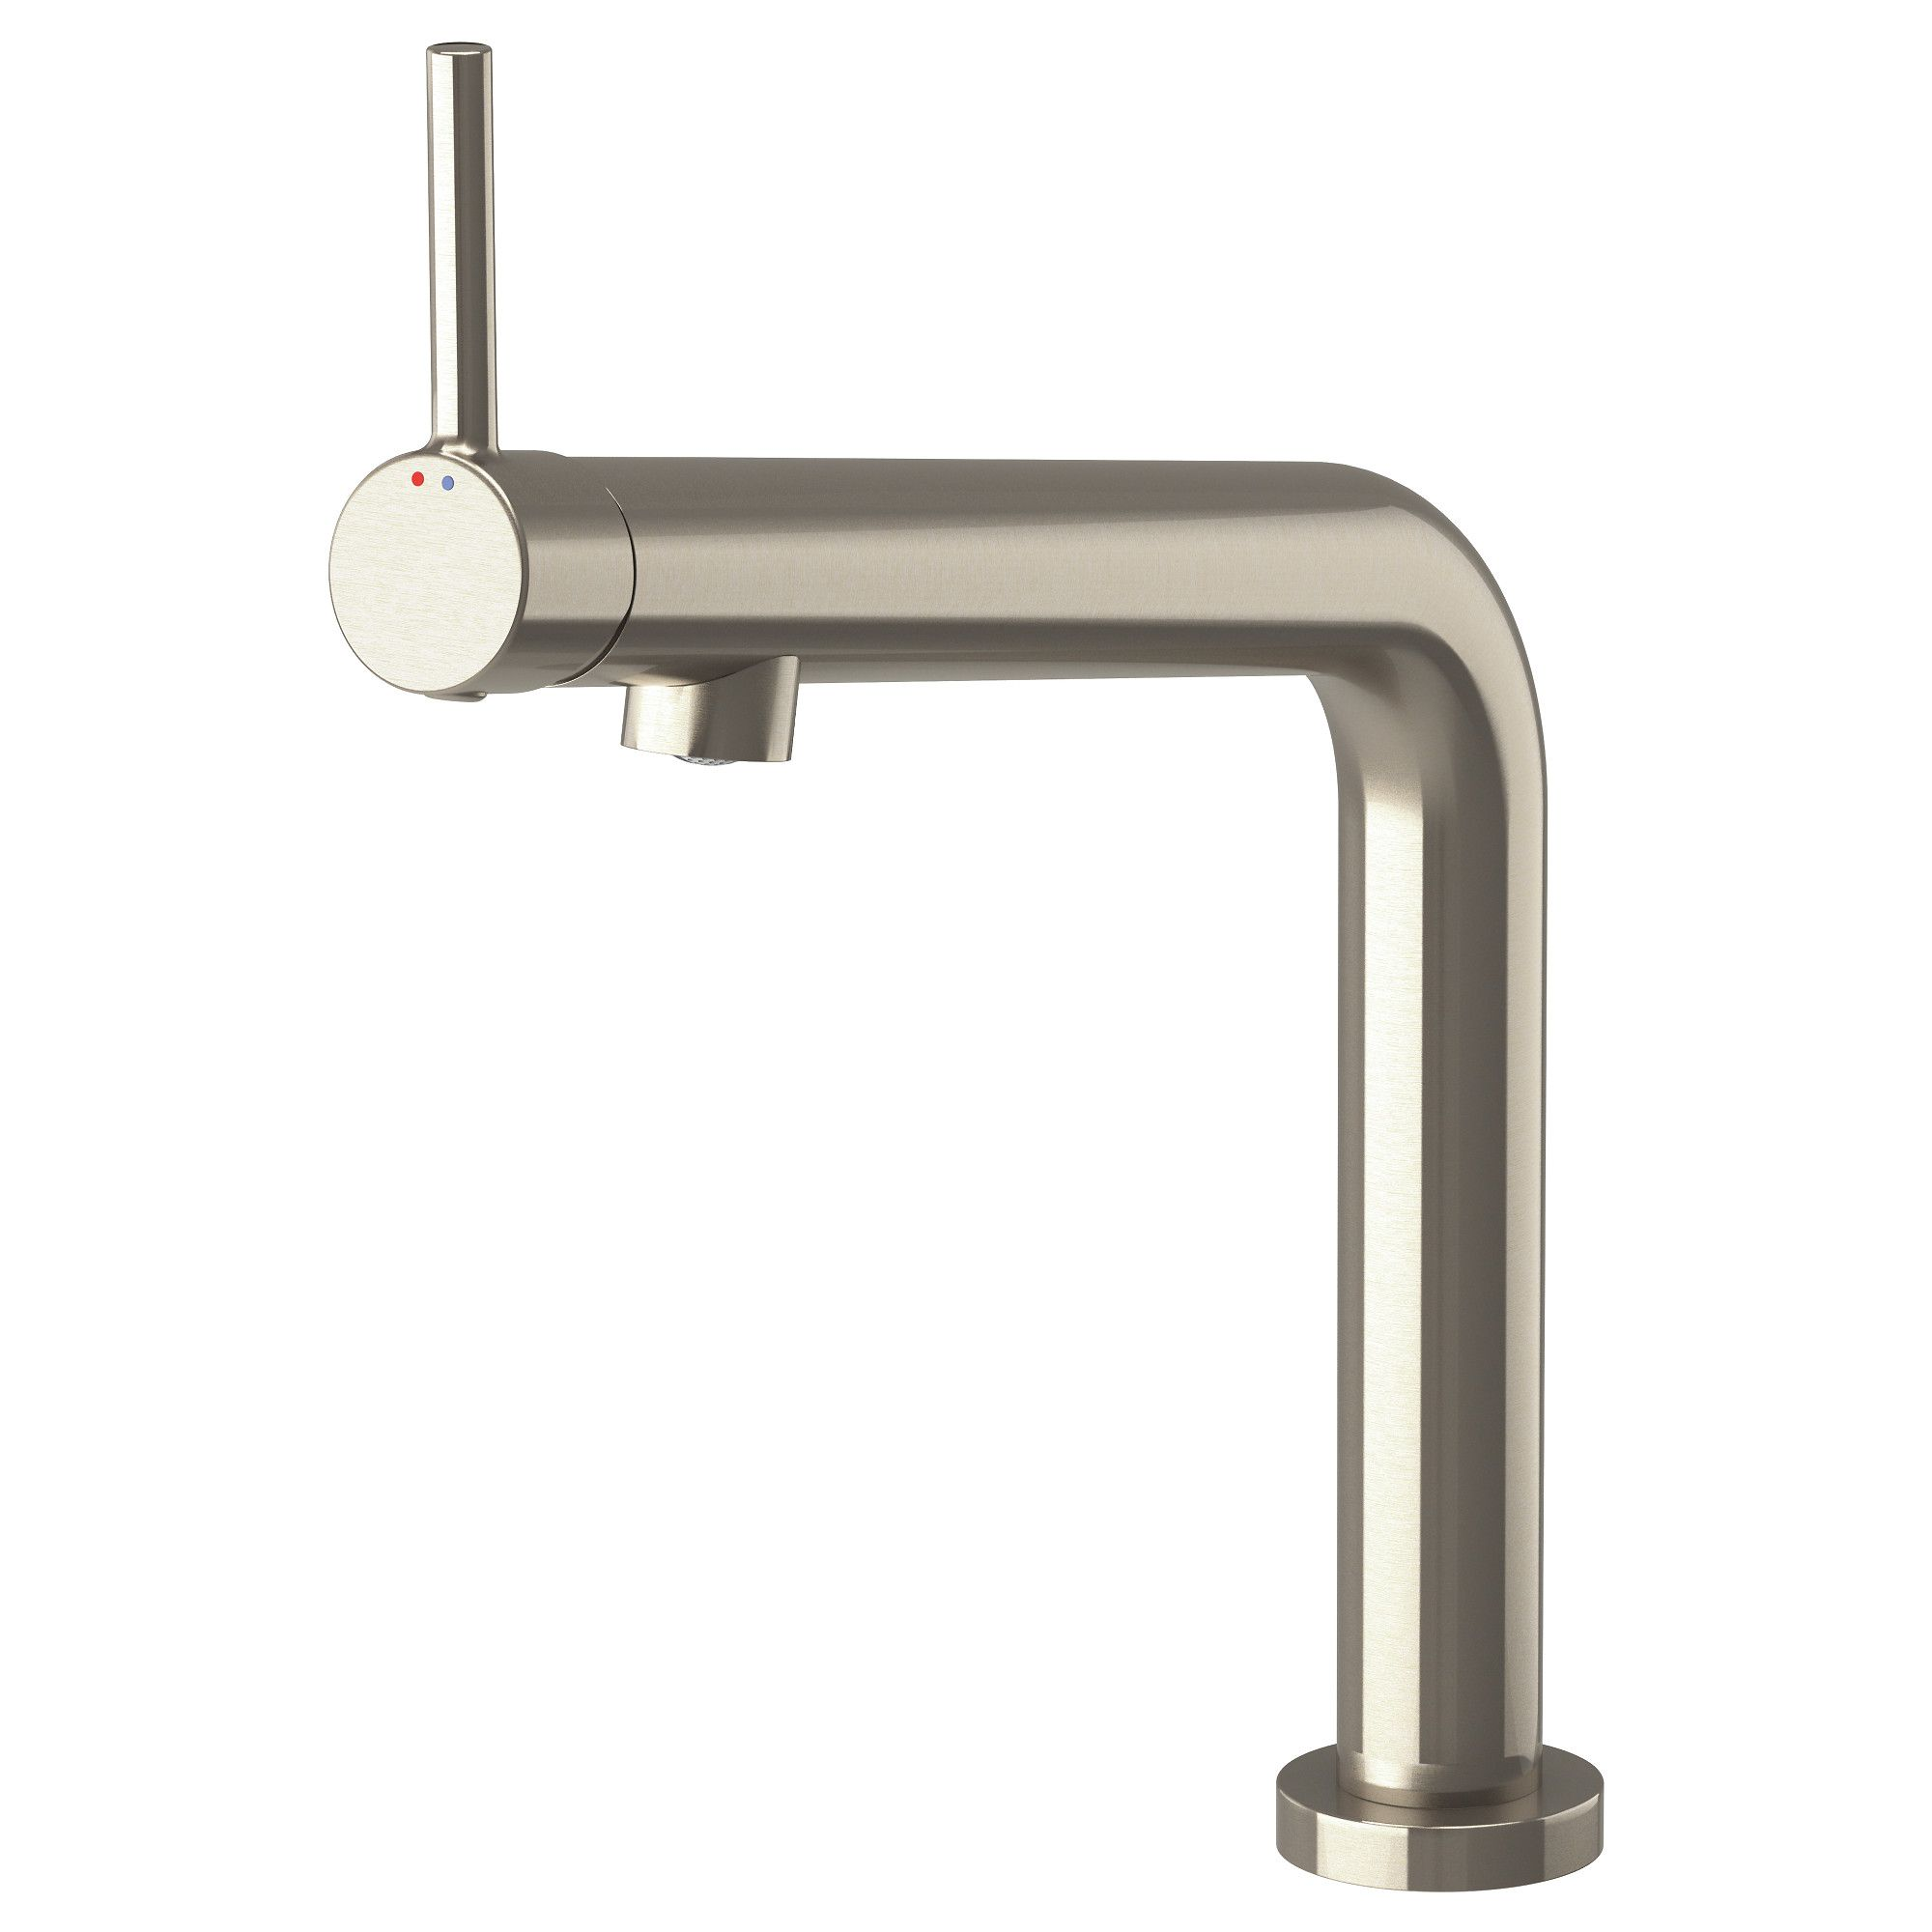 IKEA - BOSJÖN Kitchen faucet stainless steel color | Kitchen faucets ...